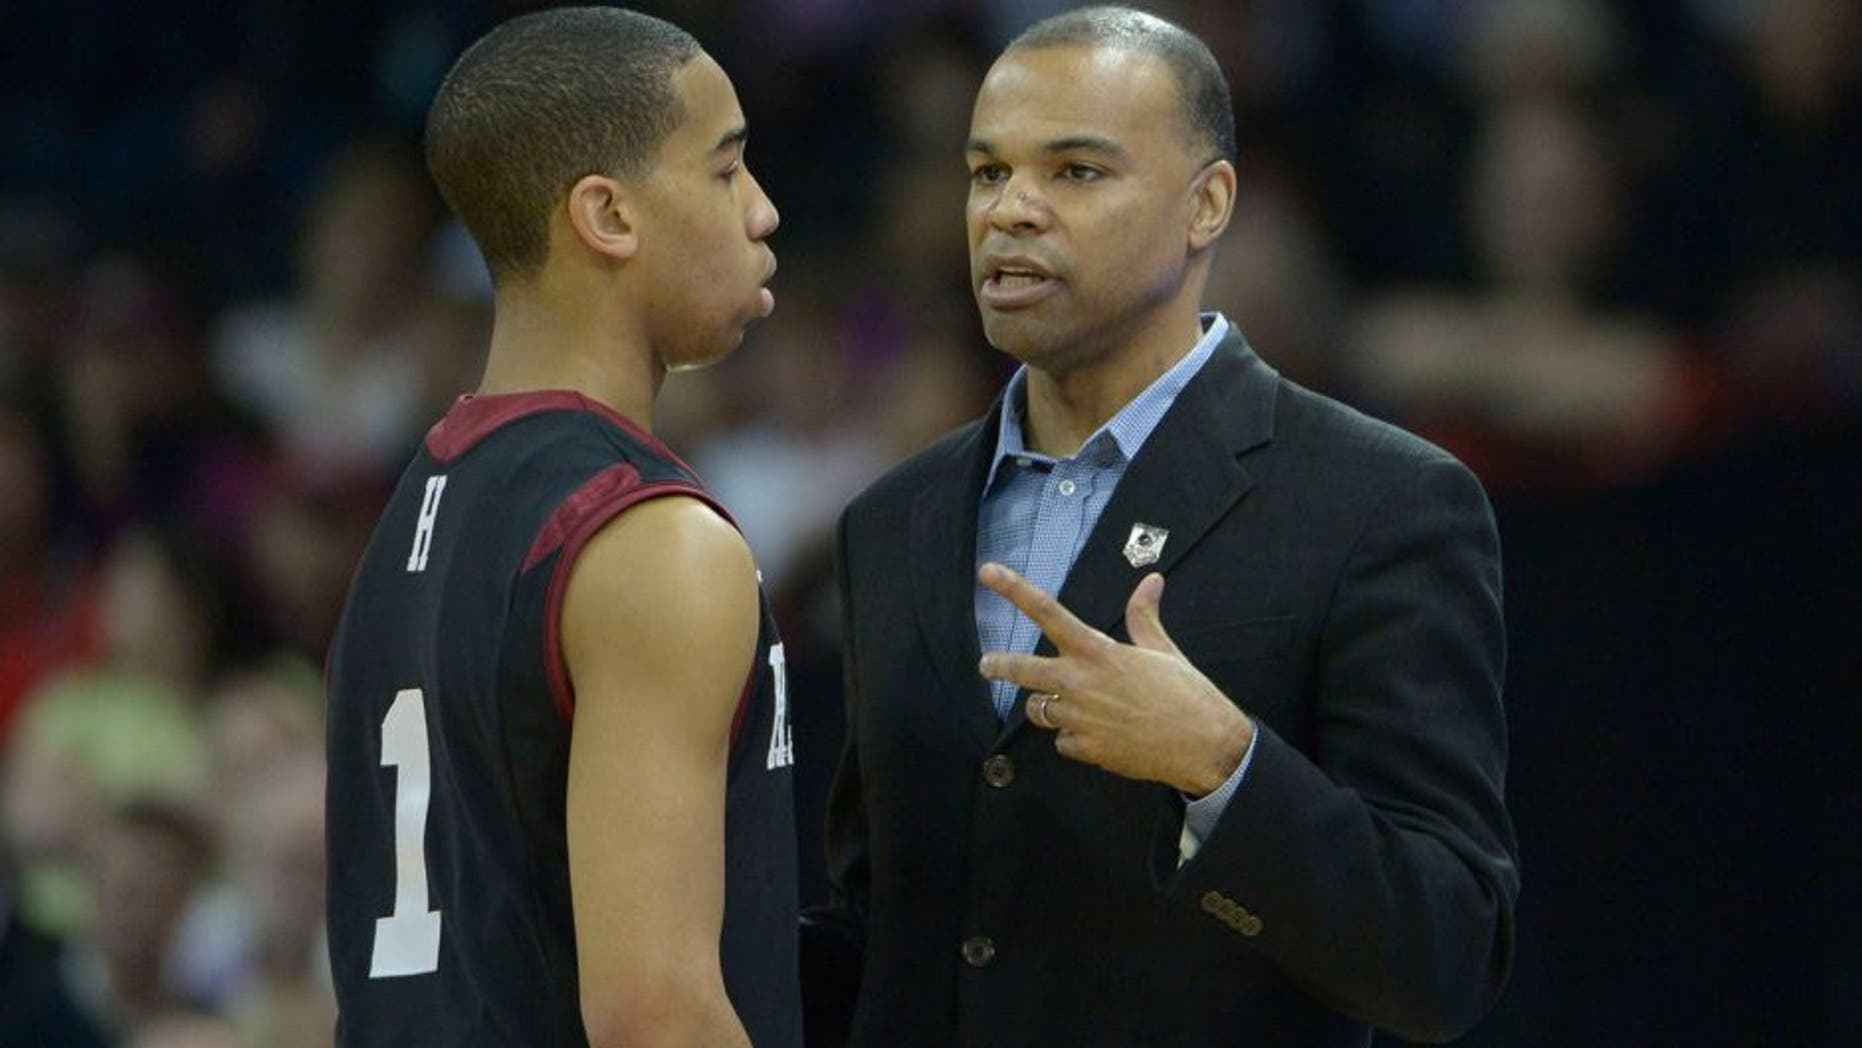 Mar 20, 2014; Spokane, WA, USA; Harvard Crimson head coach Tommy Amaker (right) instructs guard Siyani Chambers (1) against the Cincinnati Bearcats in the first half of a men's college basketball game during the second round of the 2014 NCAA Tournament at Veterans Memorial Arena. Mandatory Credit: Kirby Lee-USA TODAY Sports